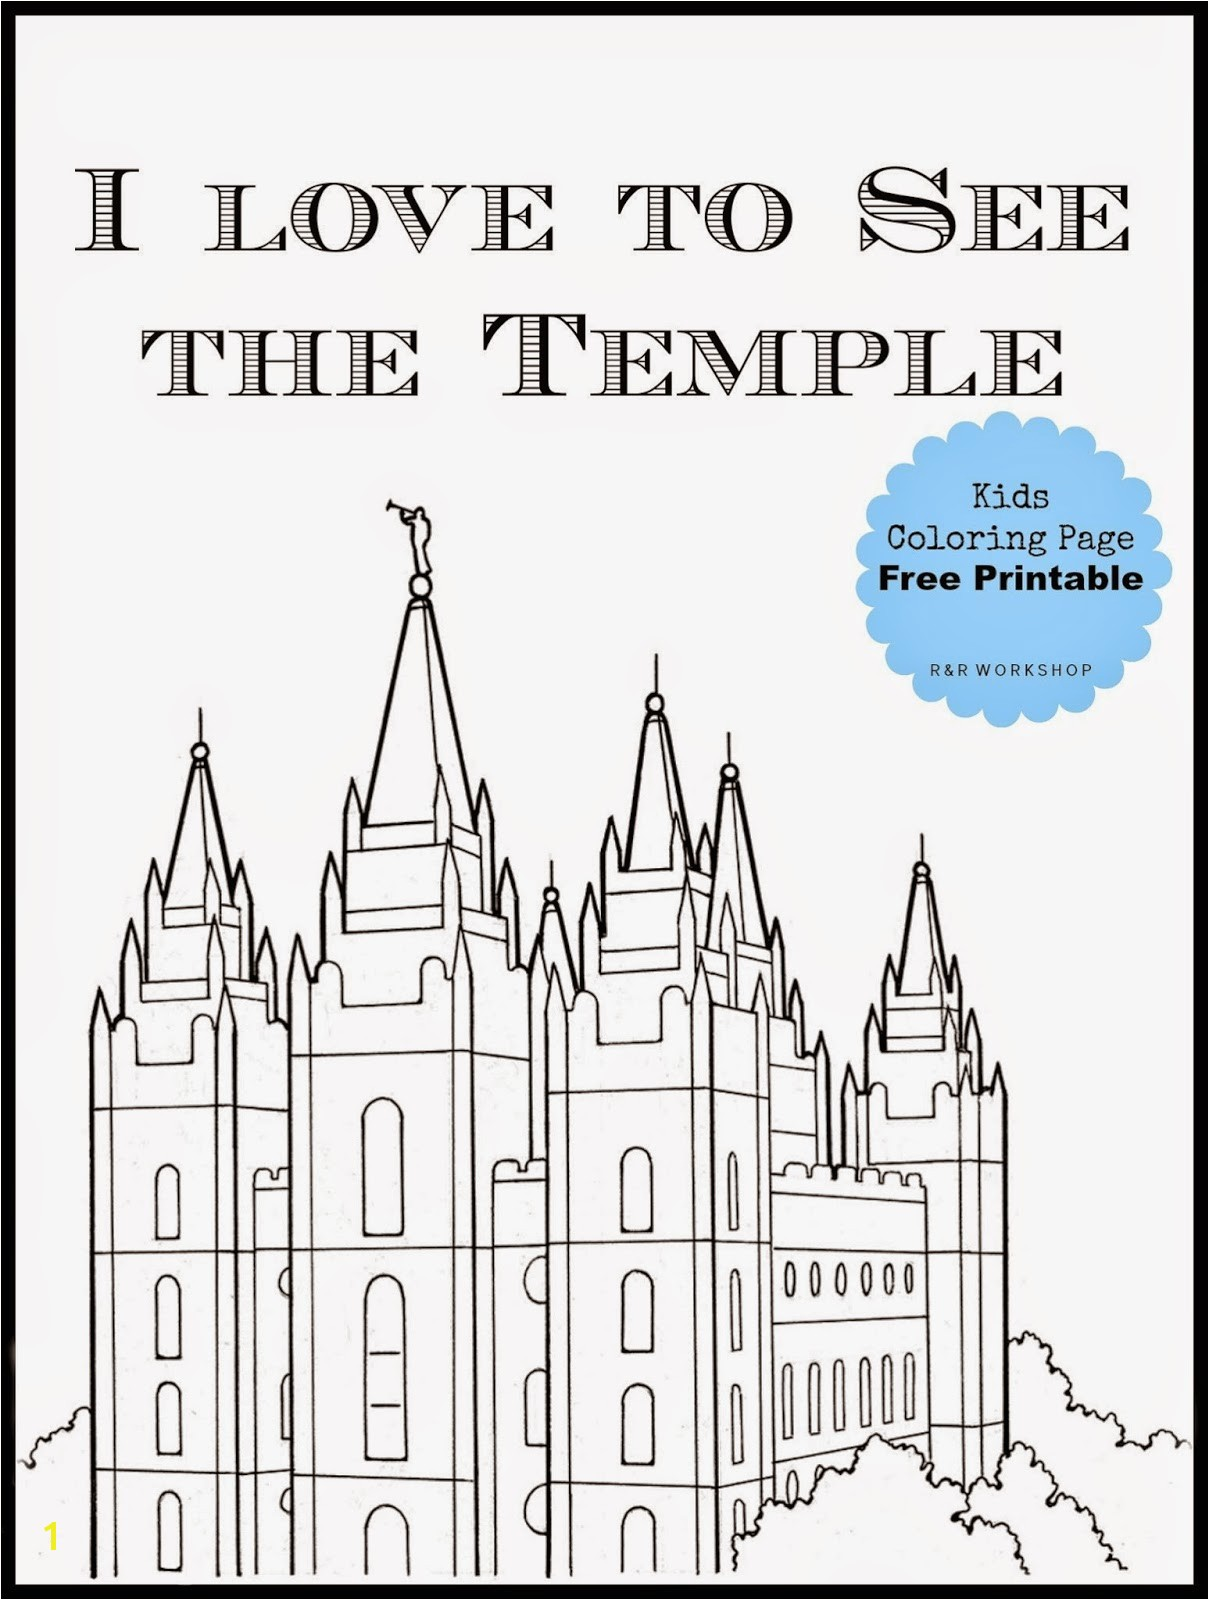 Inspirational Lds Temple Coloring Pages petitive Kirtland Page R Workshop Salt Lake Free Printable